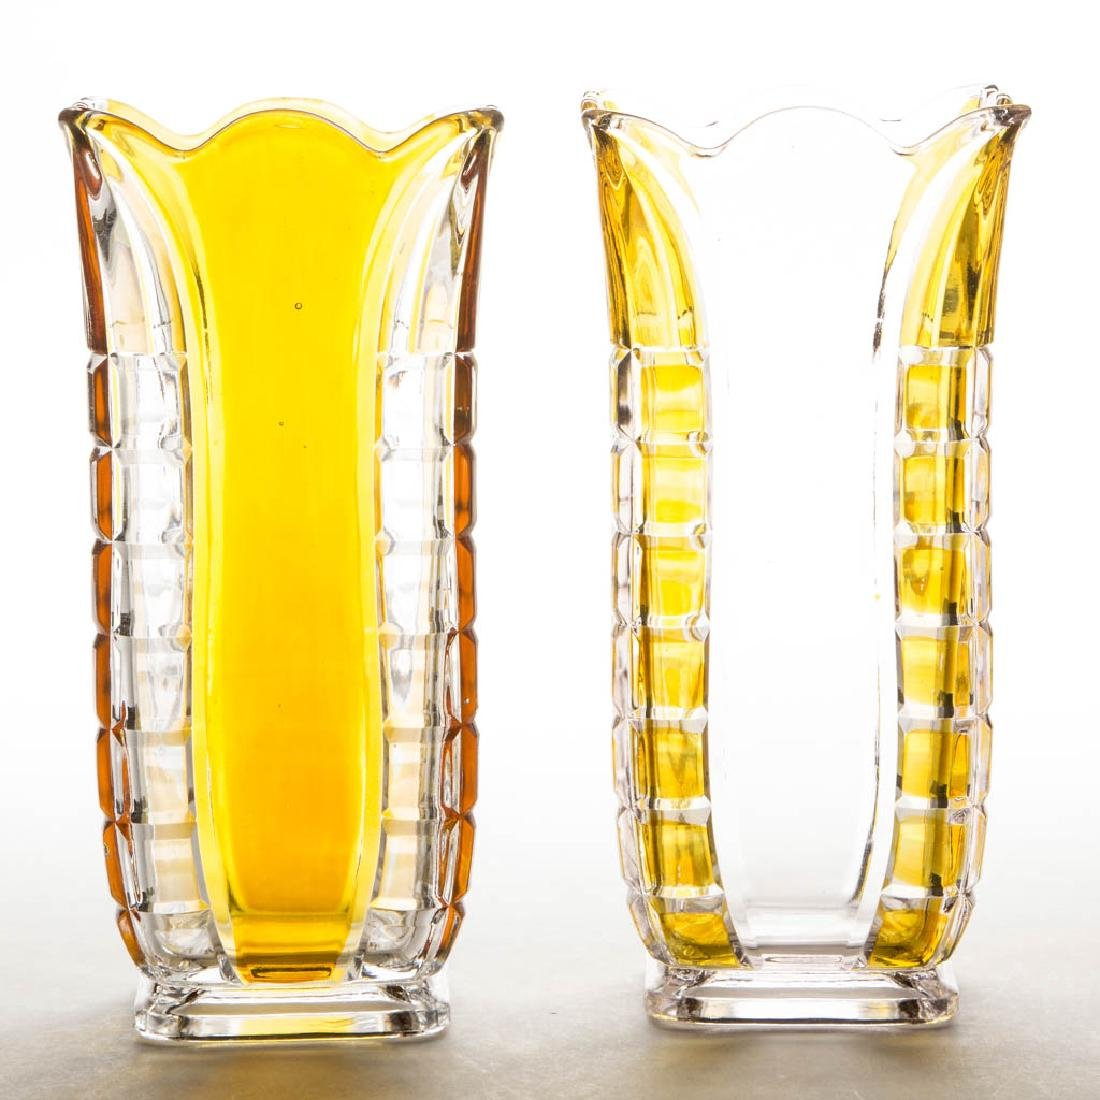 HIDALGO / ADAMS NO. 5 - AMBER-STAINED CELERY VASES, LOT